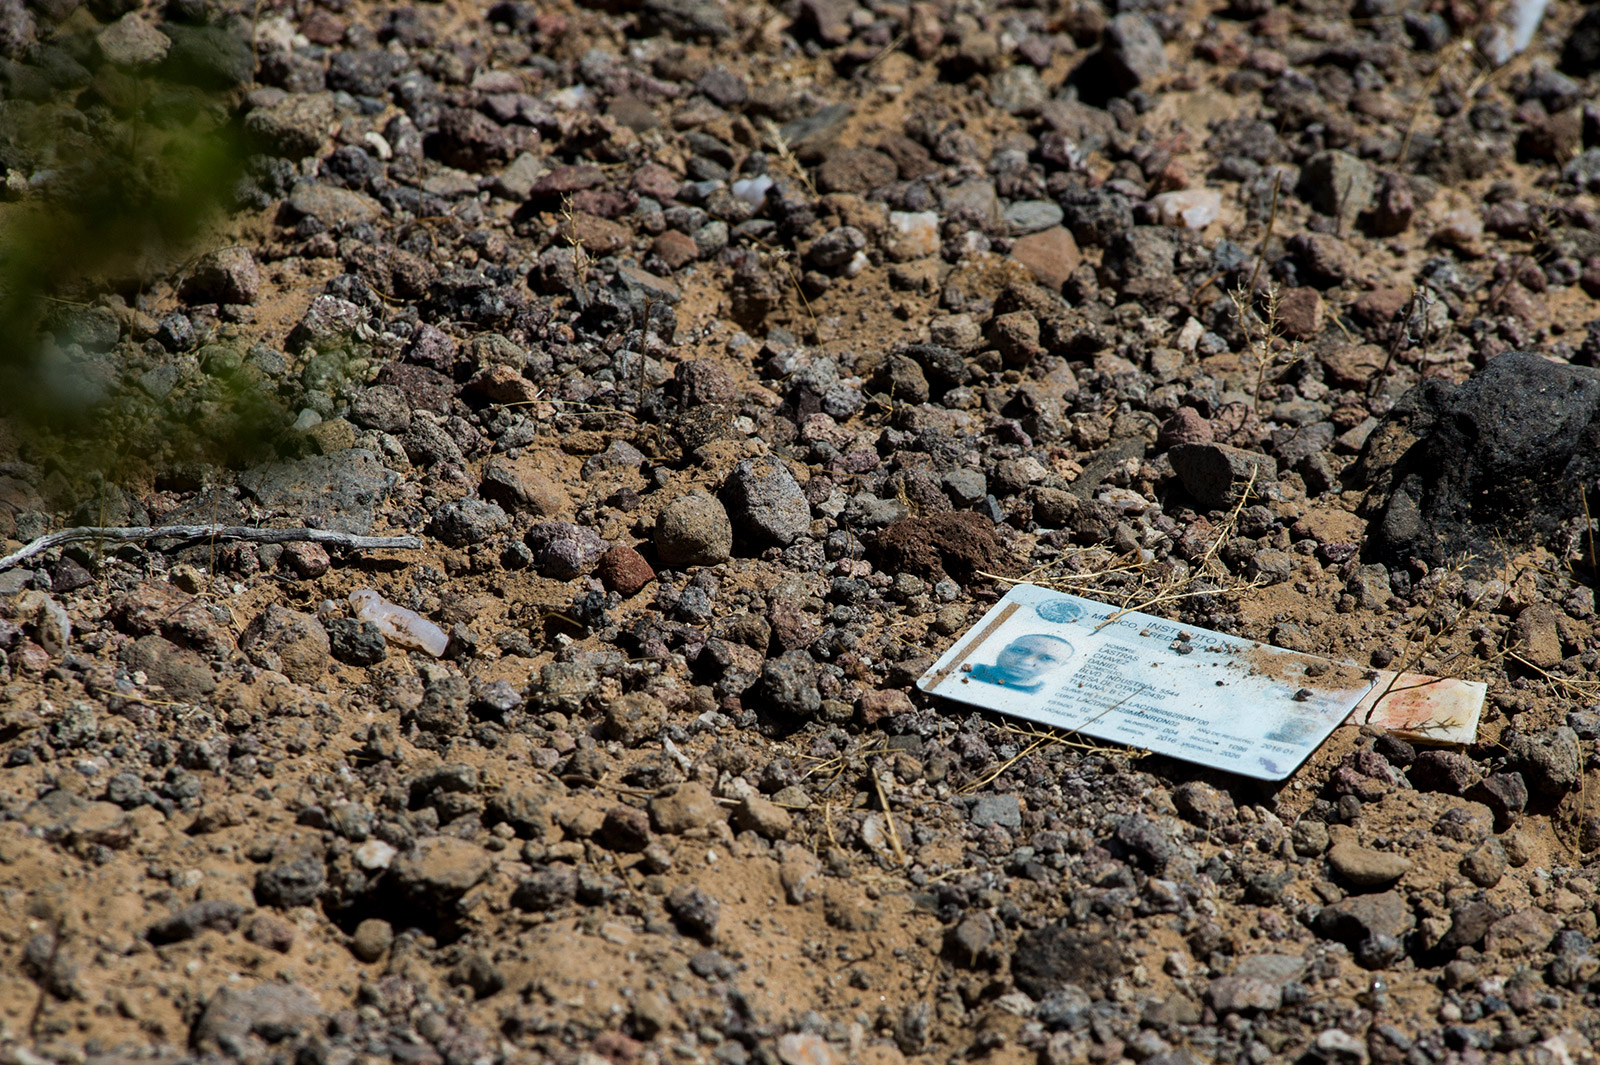 A string of personal items, including this Mexico ID card, leads to a small wash where the body of a missing migrant was discovered. The body had since been removed by local authorities, but the personal items remained in the desert on Aug. 26, 2017. <em>(Brandon Quester/inewsource)</em>